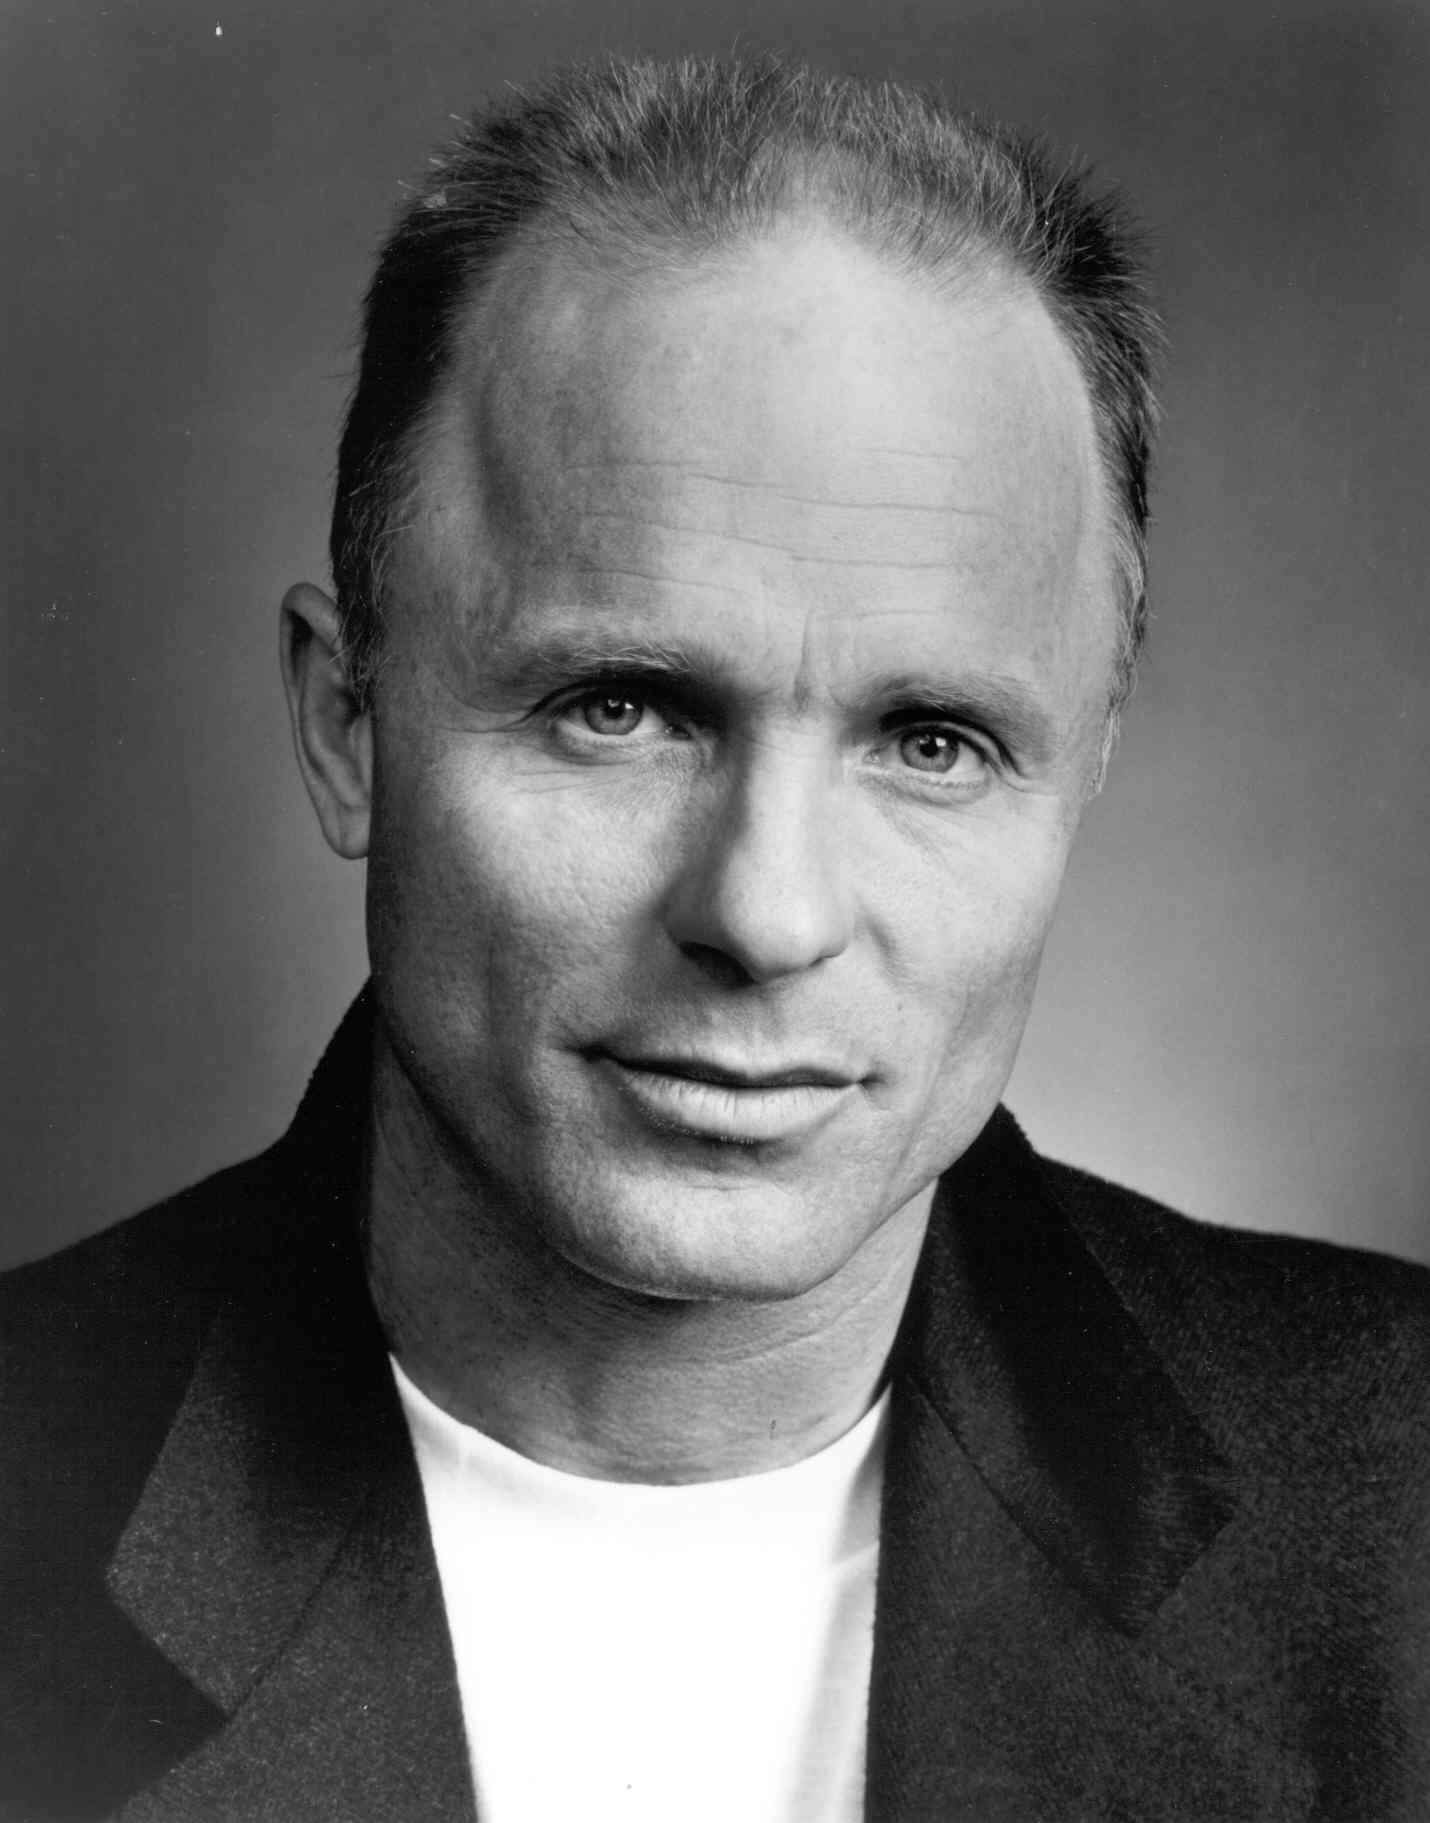 ed harris actor facebooked harris westworld, ed harris robocop, ed harris wikipedia, ed harris smile, эд харрис фильм, ed harris movies, ed harris net worth, ed harris enemy at the gates, ed harris rock, ed harris instagram, ed harris twitter, ed harris sinemalar, ed harris actor facebook, ed harris wiki, ed harris filmleri izle, ed harris london, эд харрис вигго, ed harris waterworld, ed harris liam neeson, ed harris height weight